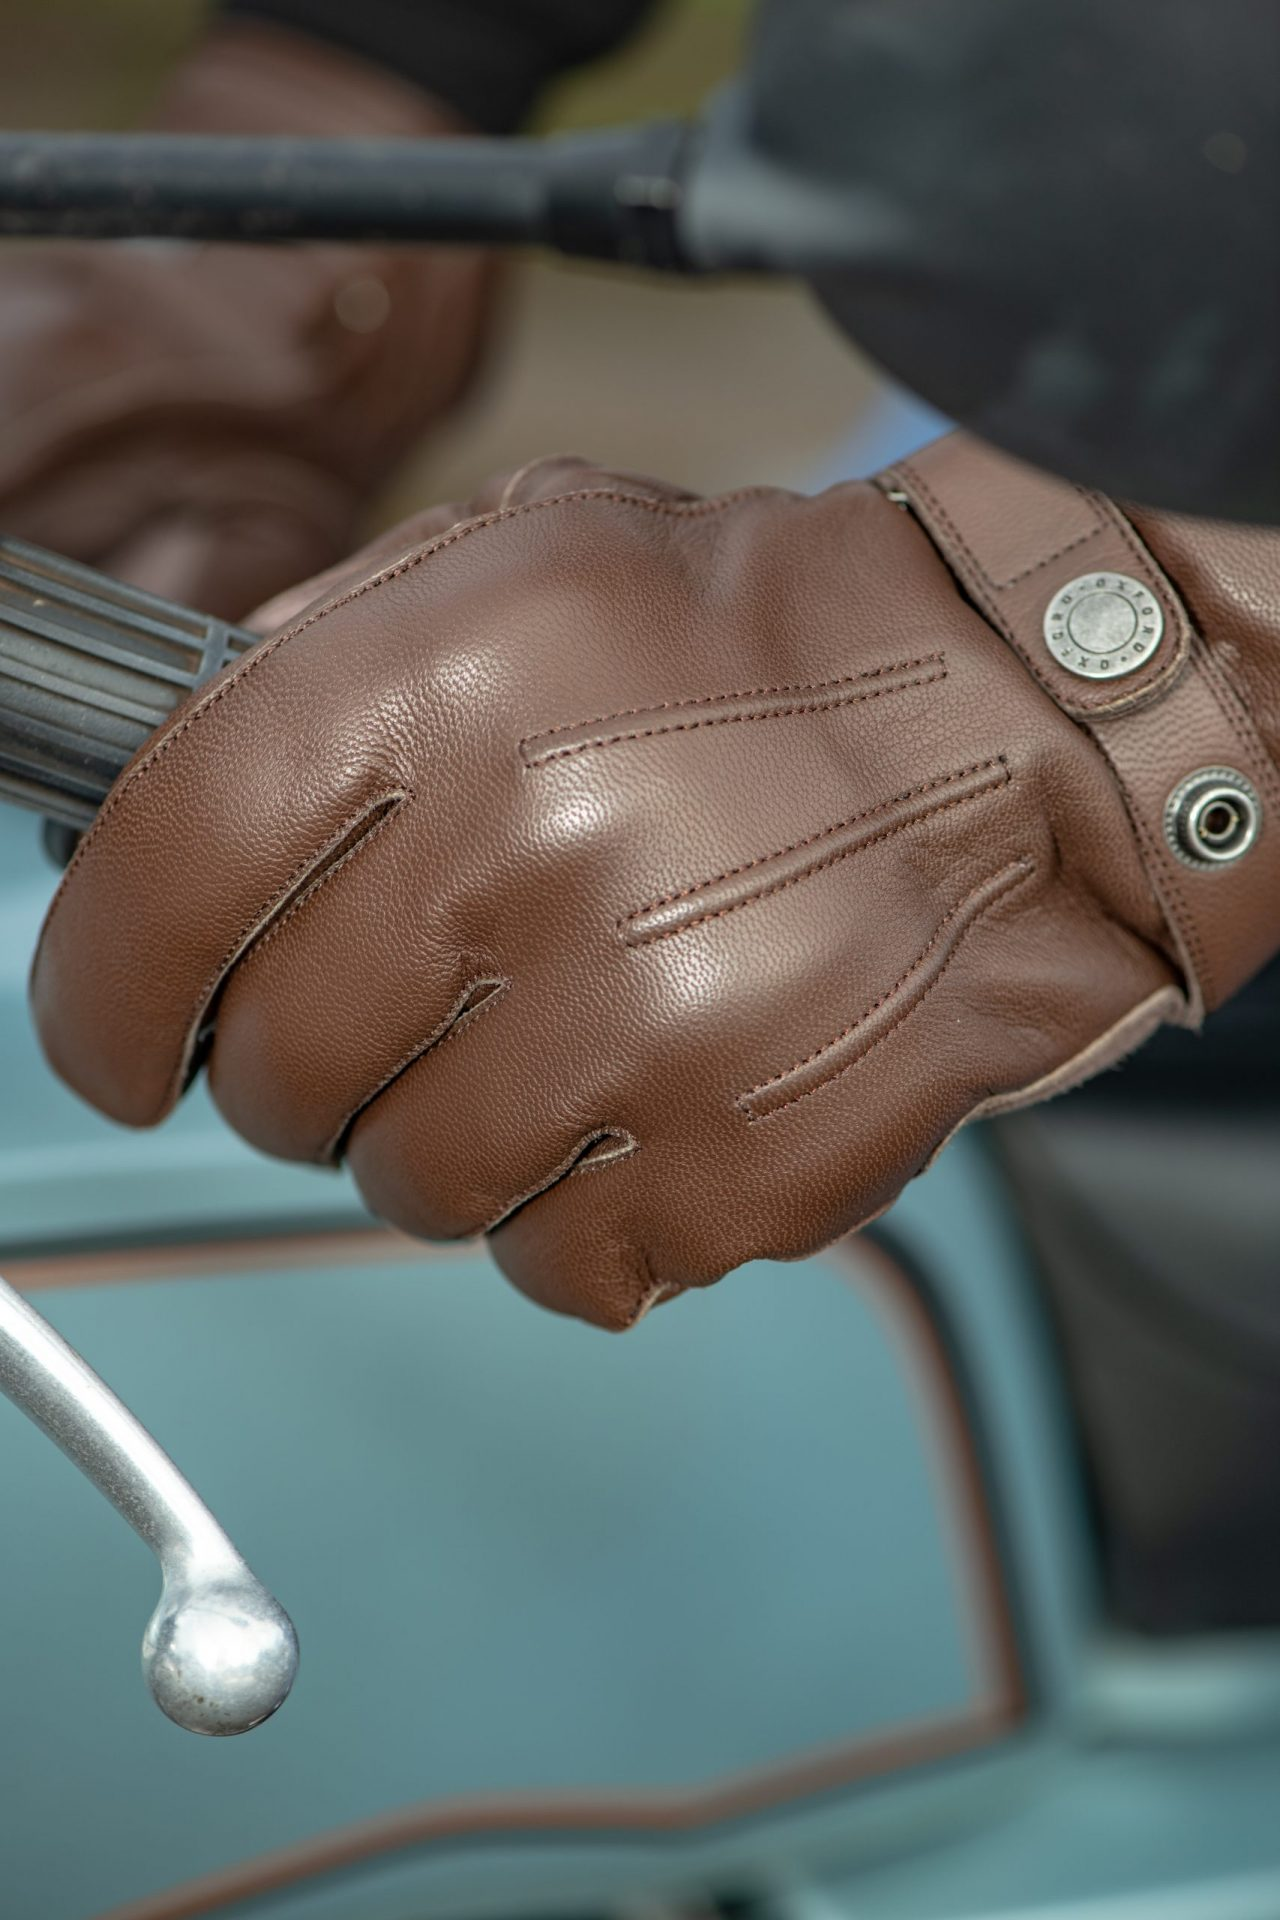 GM215102-Holton-2.0-MS-Glove-Brown-01-scaled Holton WP Dry2Dry™ Urban Gloves